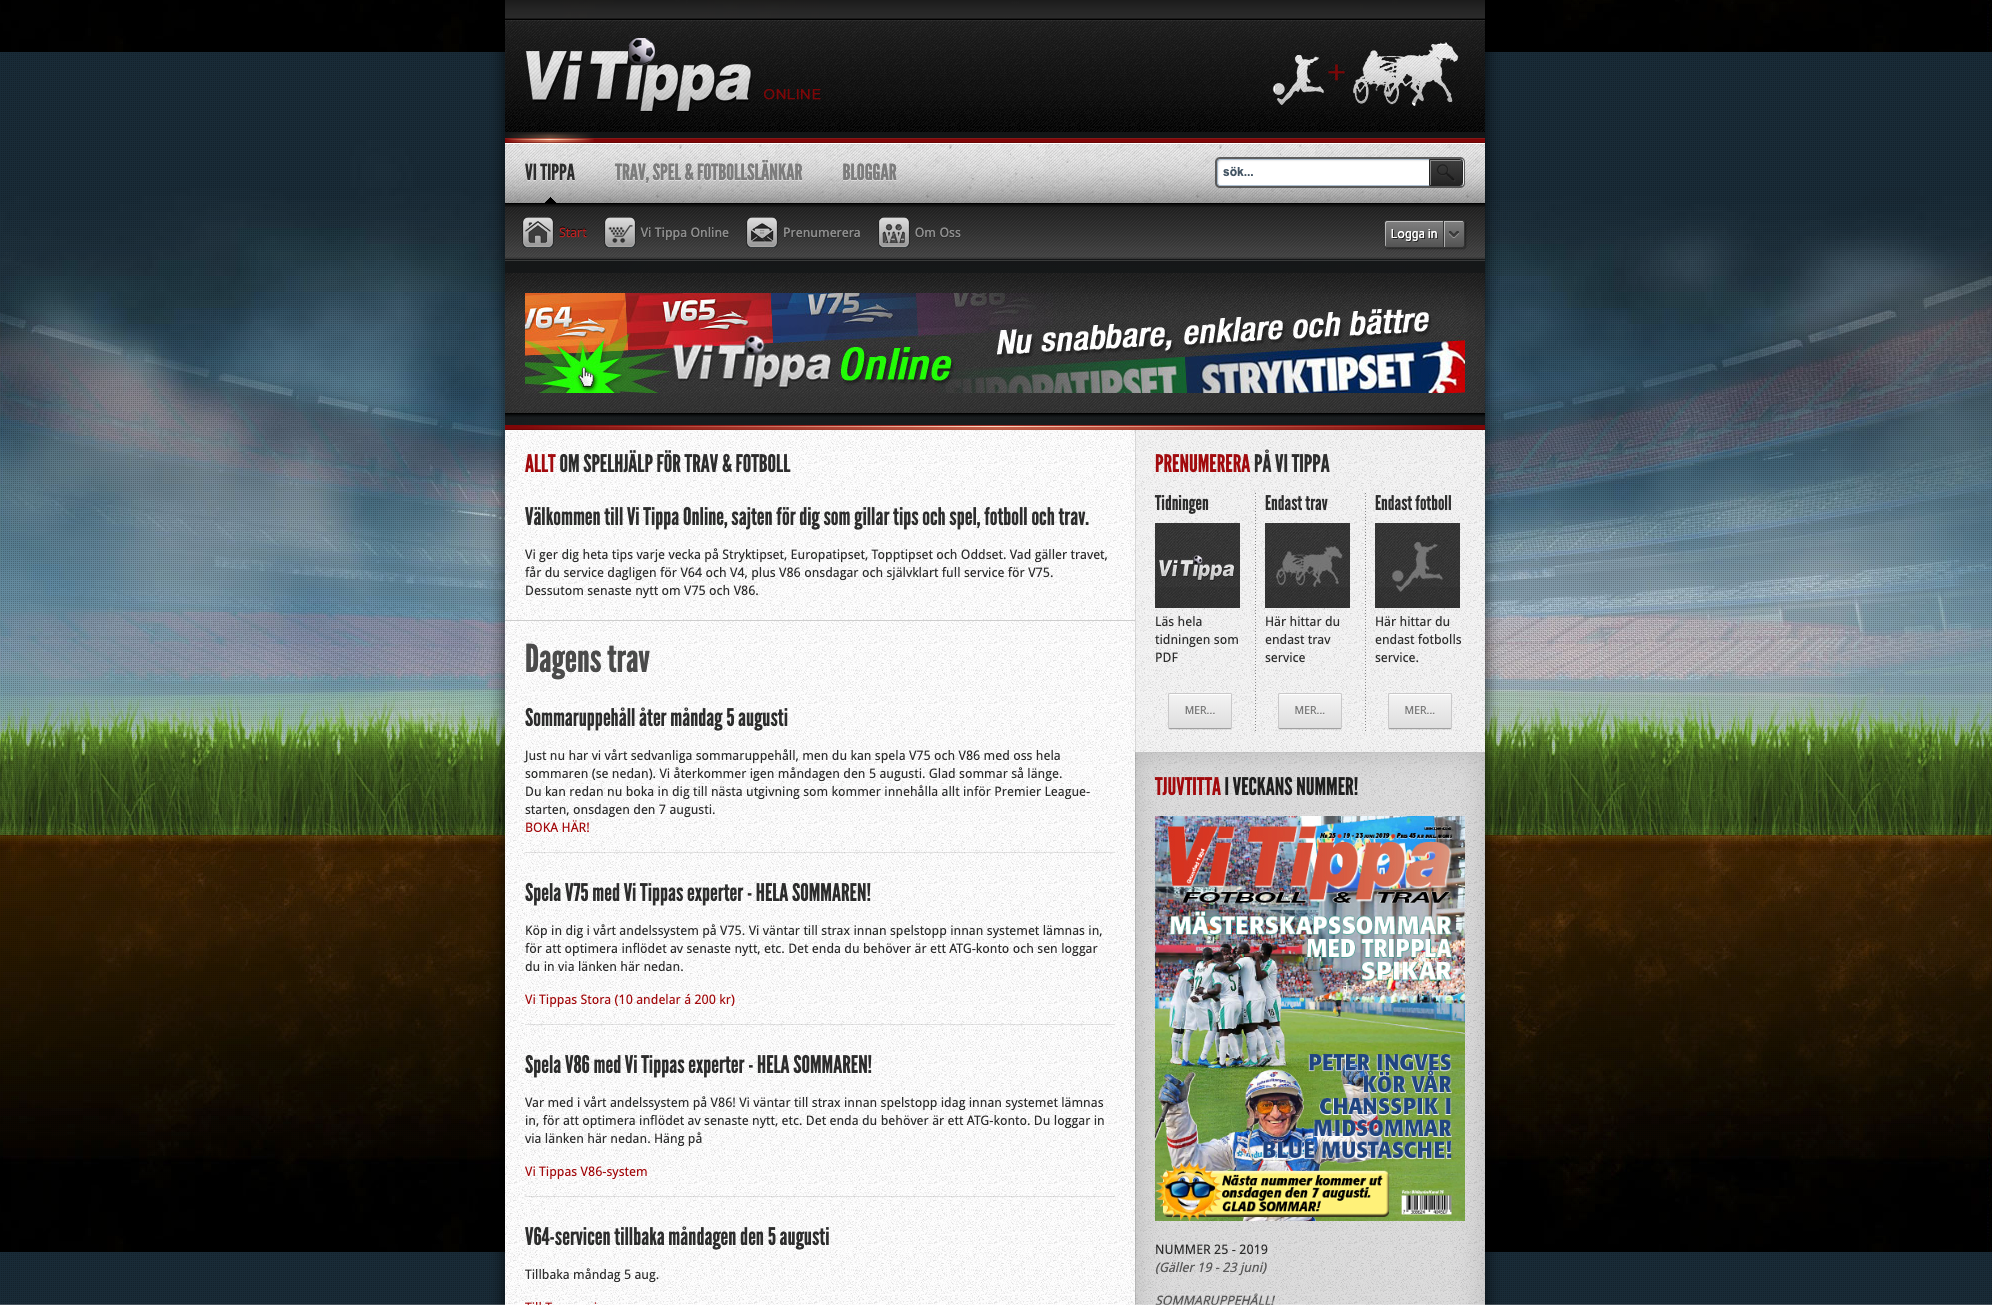 Digital Sports Magazine Vi Tippa